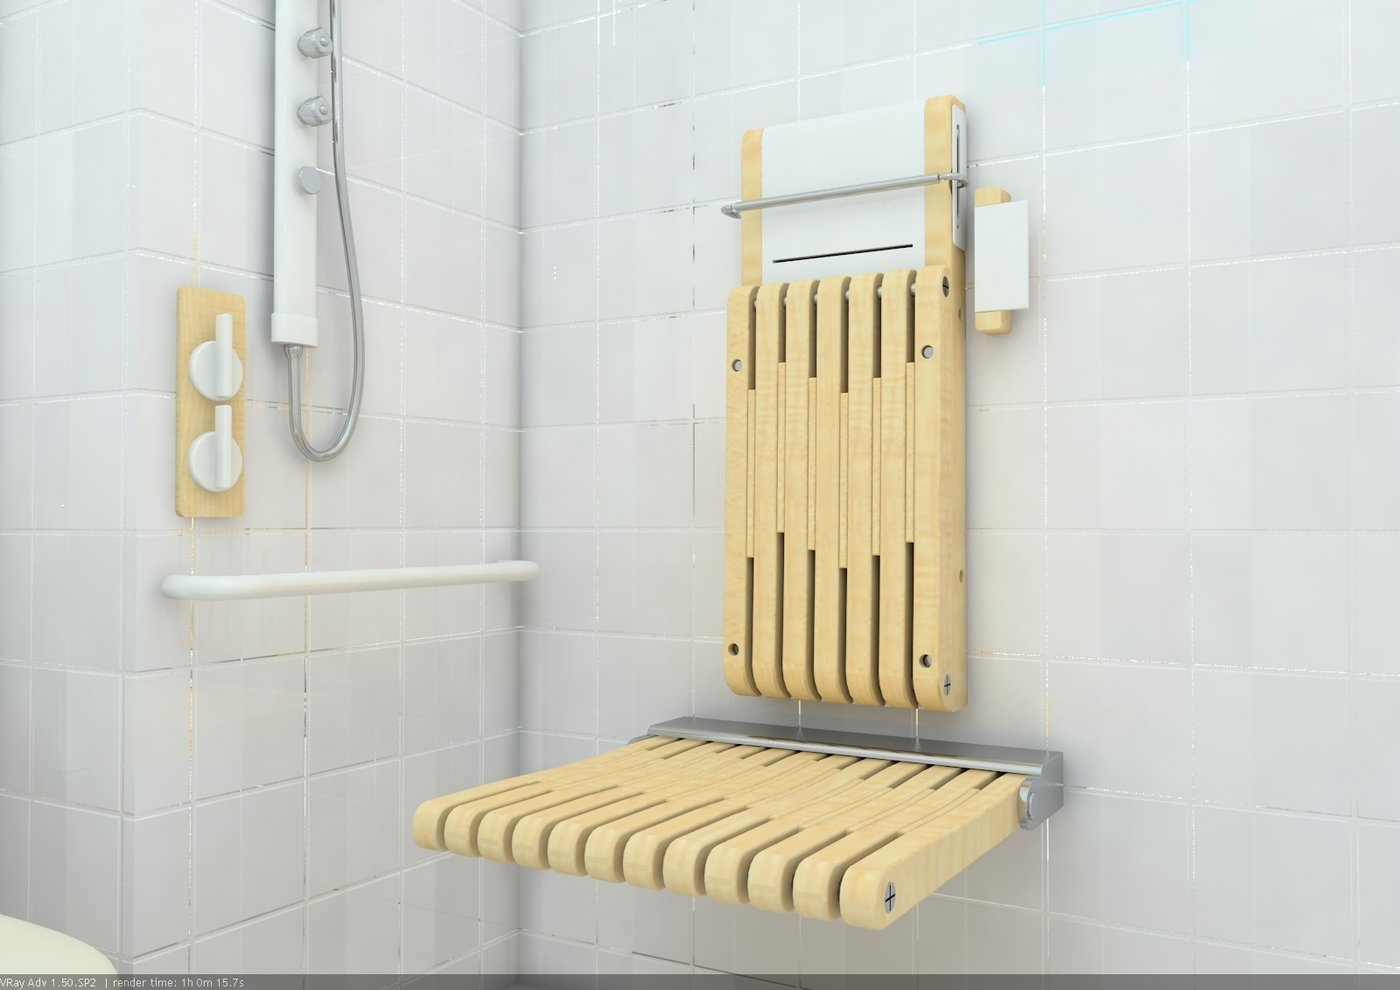 shower chair for elderly singapore wood kitchen tables and chairs sets easy seat people by rong pei at